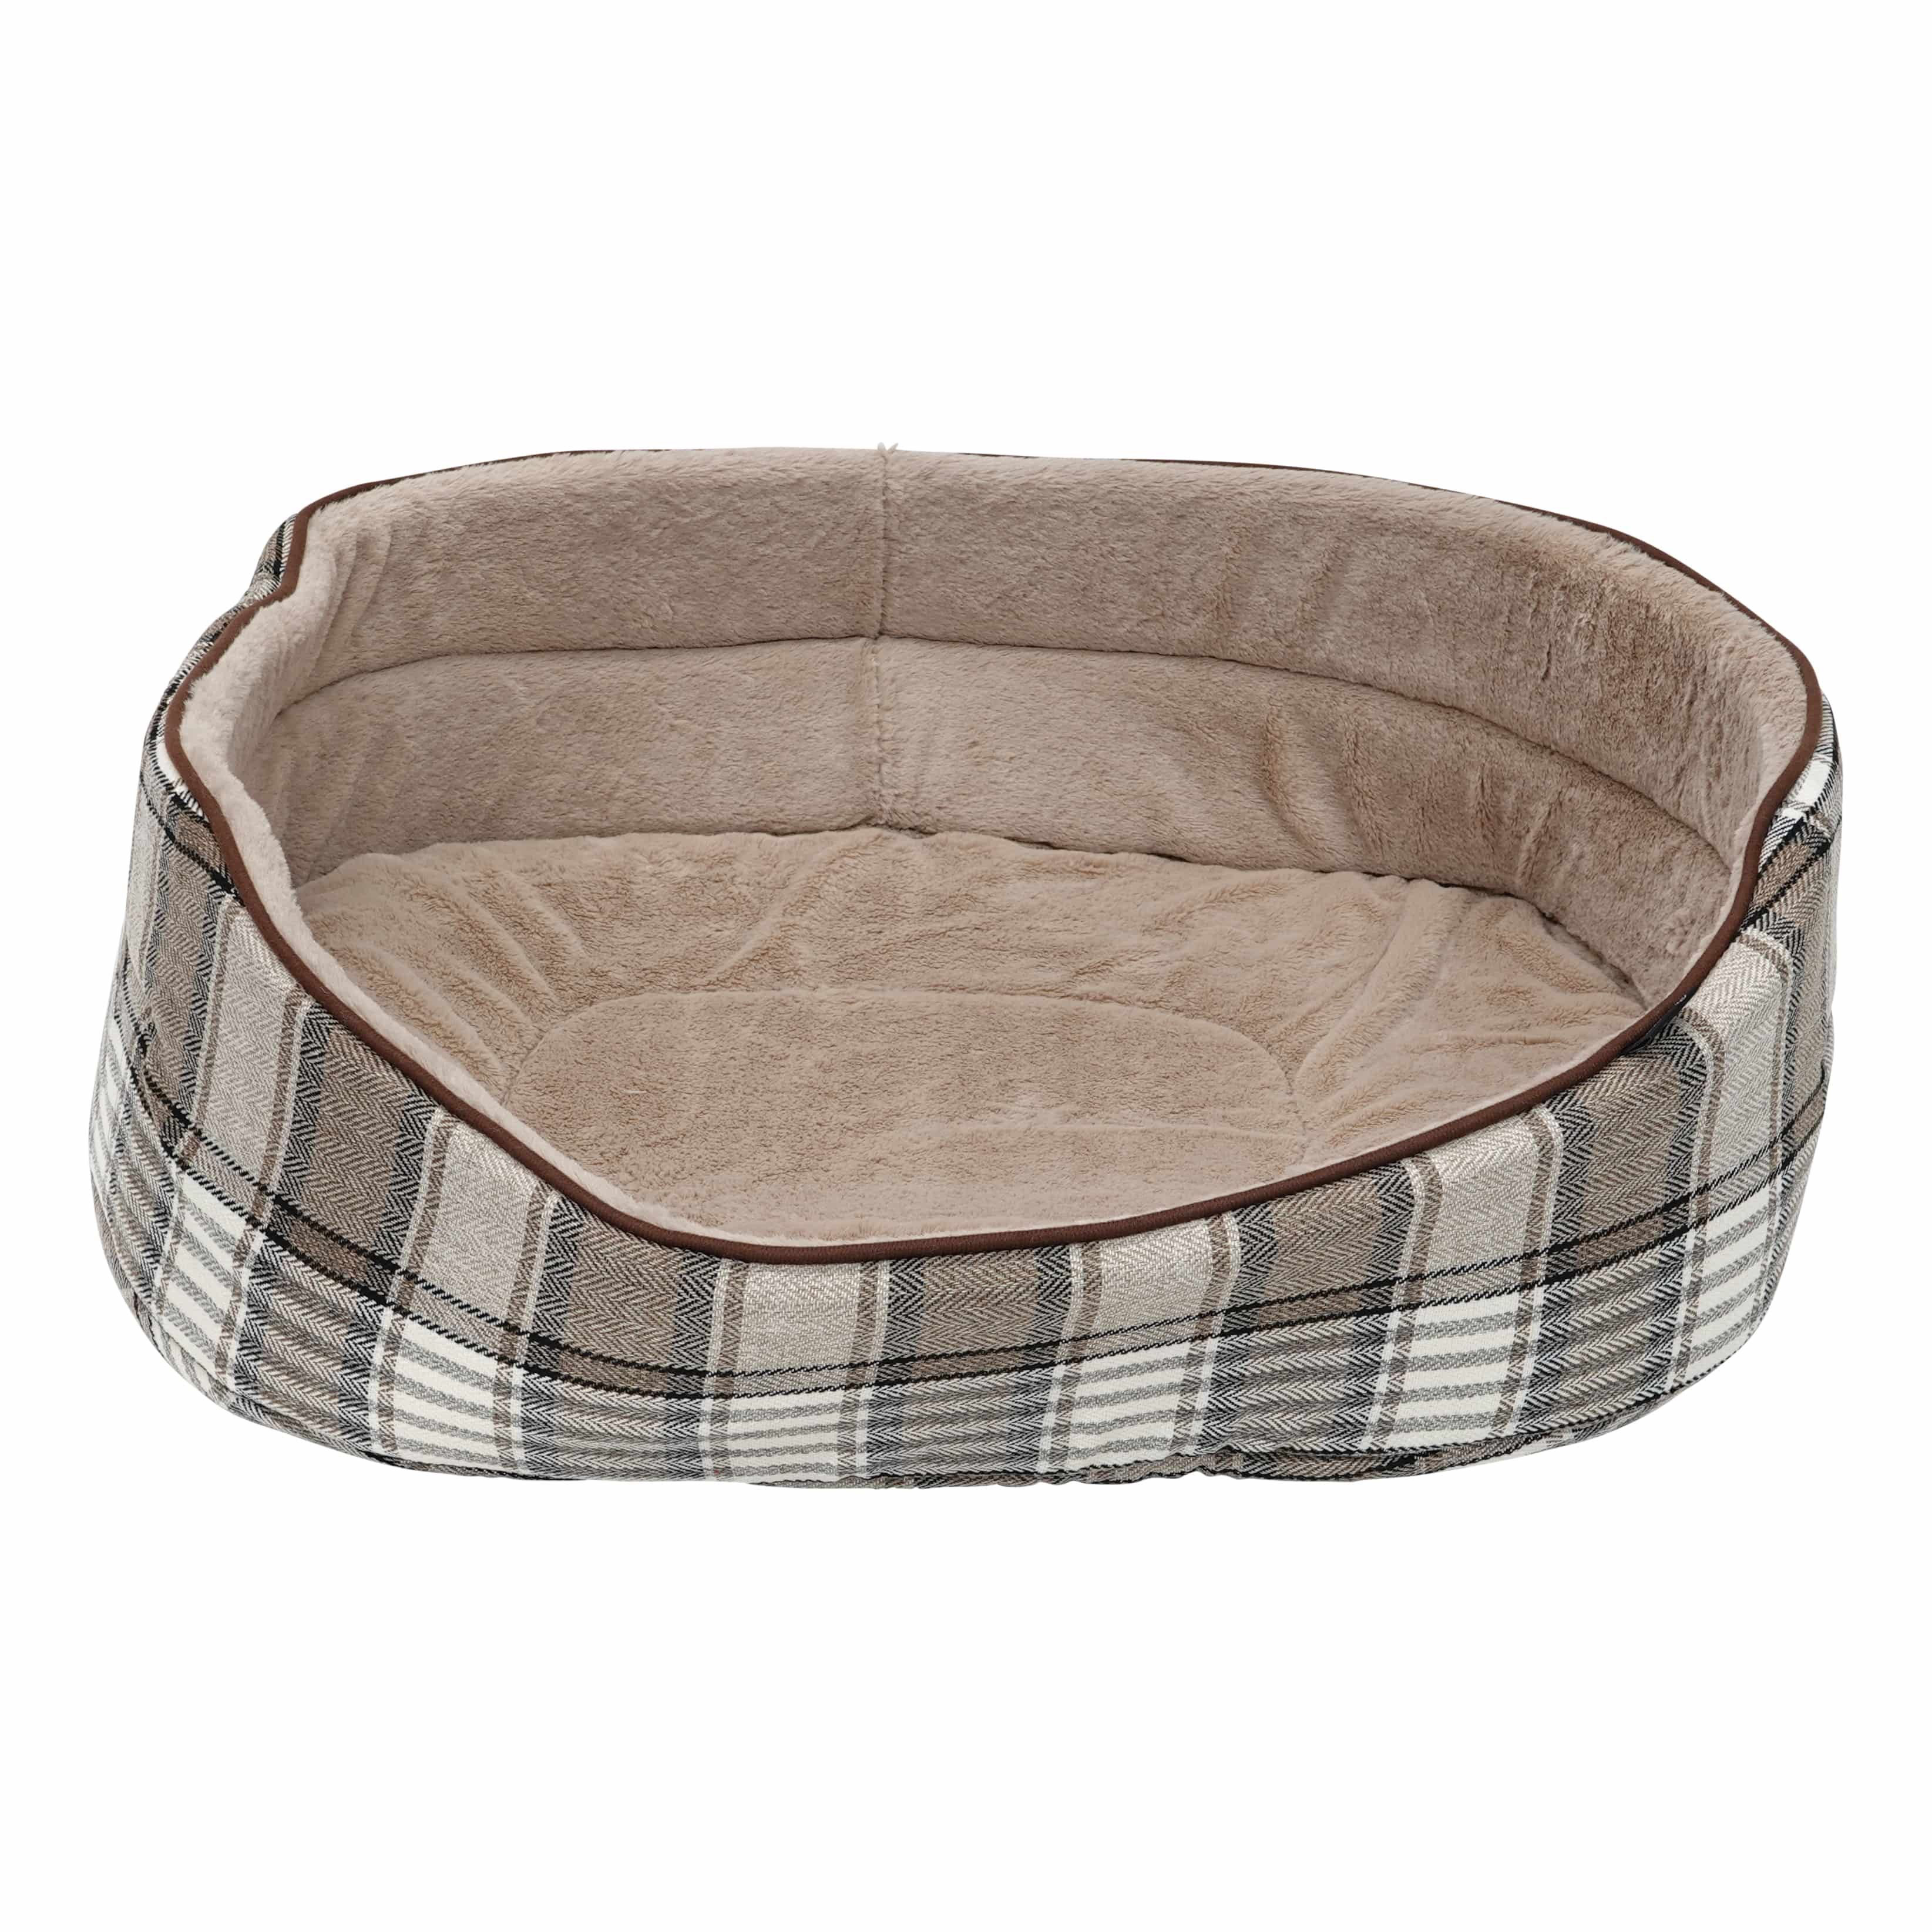 4Goodz ovale hondenmand Schotse ruit 80x63 cm voor grote hond - Taupe